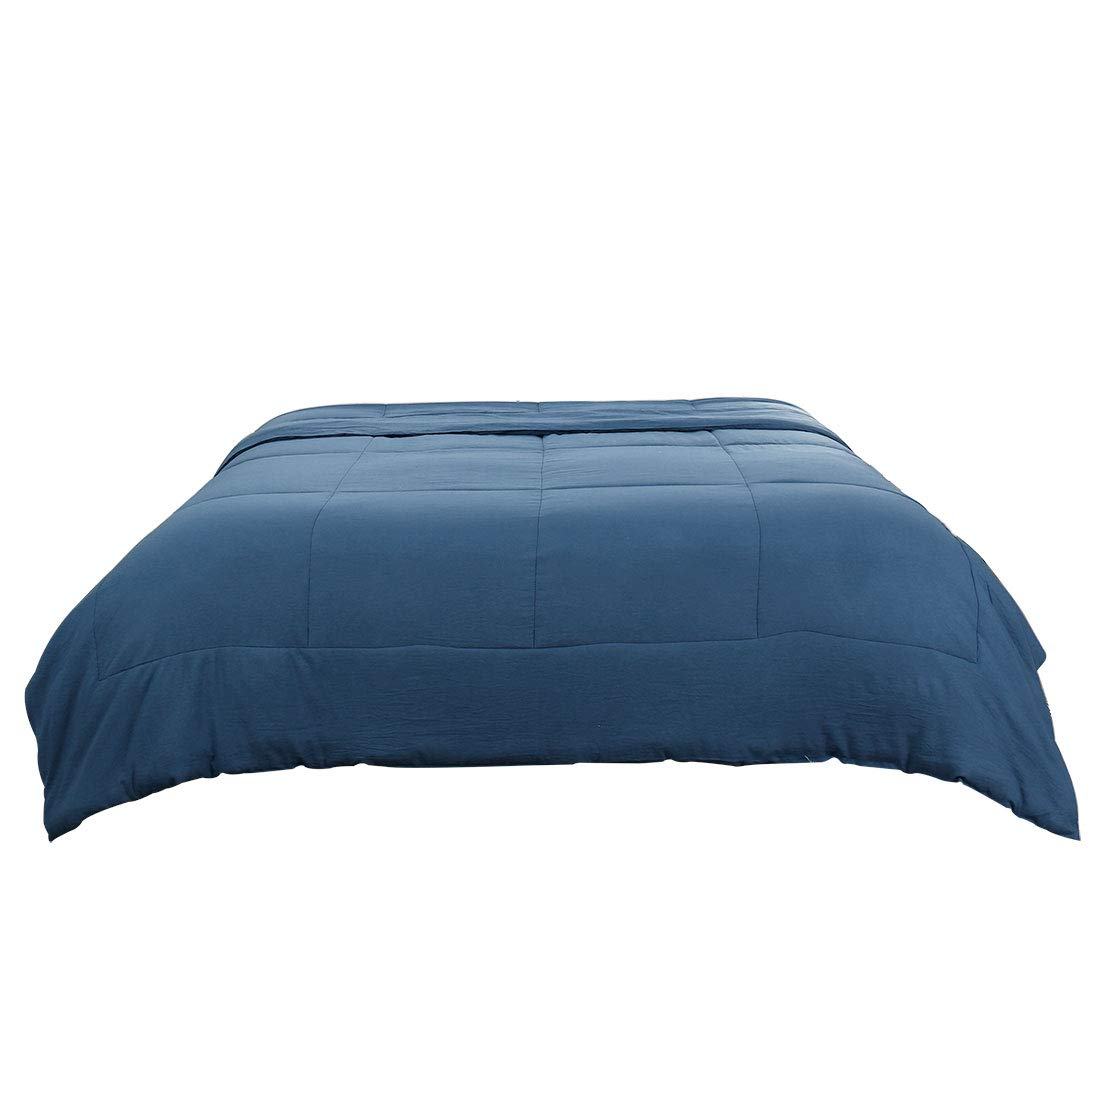 PiccoCasa Twin Blue 100% Washed Cotton Quilted Comforter - Duvet Insert/Stand Along Comforter - Reversible Design - Machine Washable - 68 by 88 inches by PiccoCasa (Image #1)